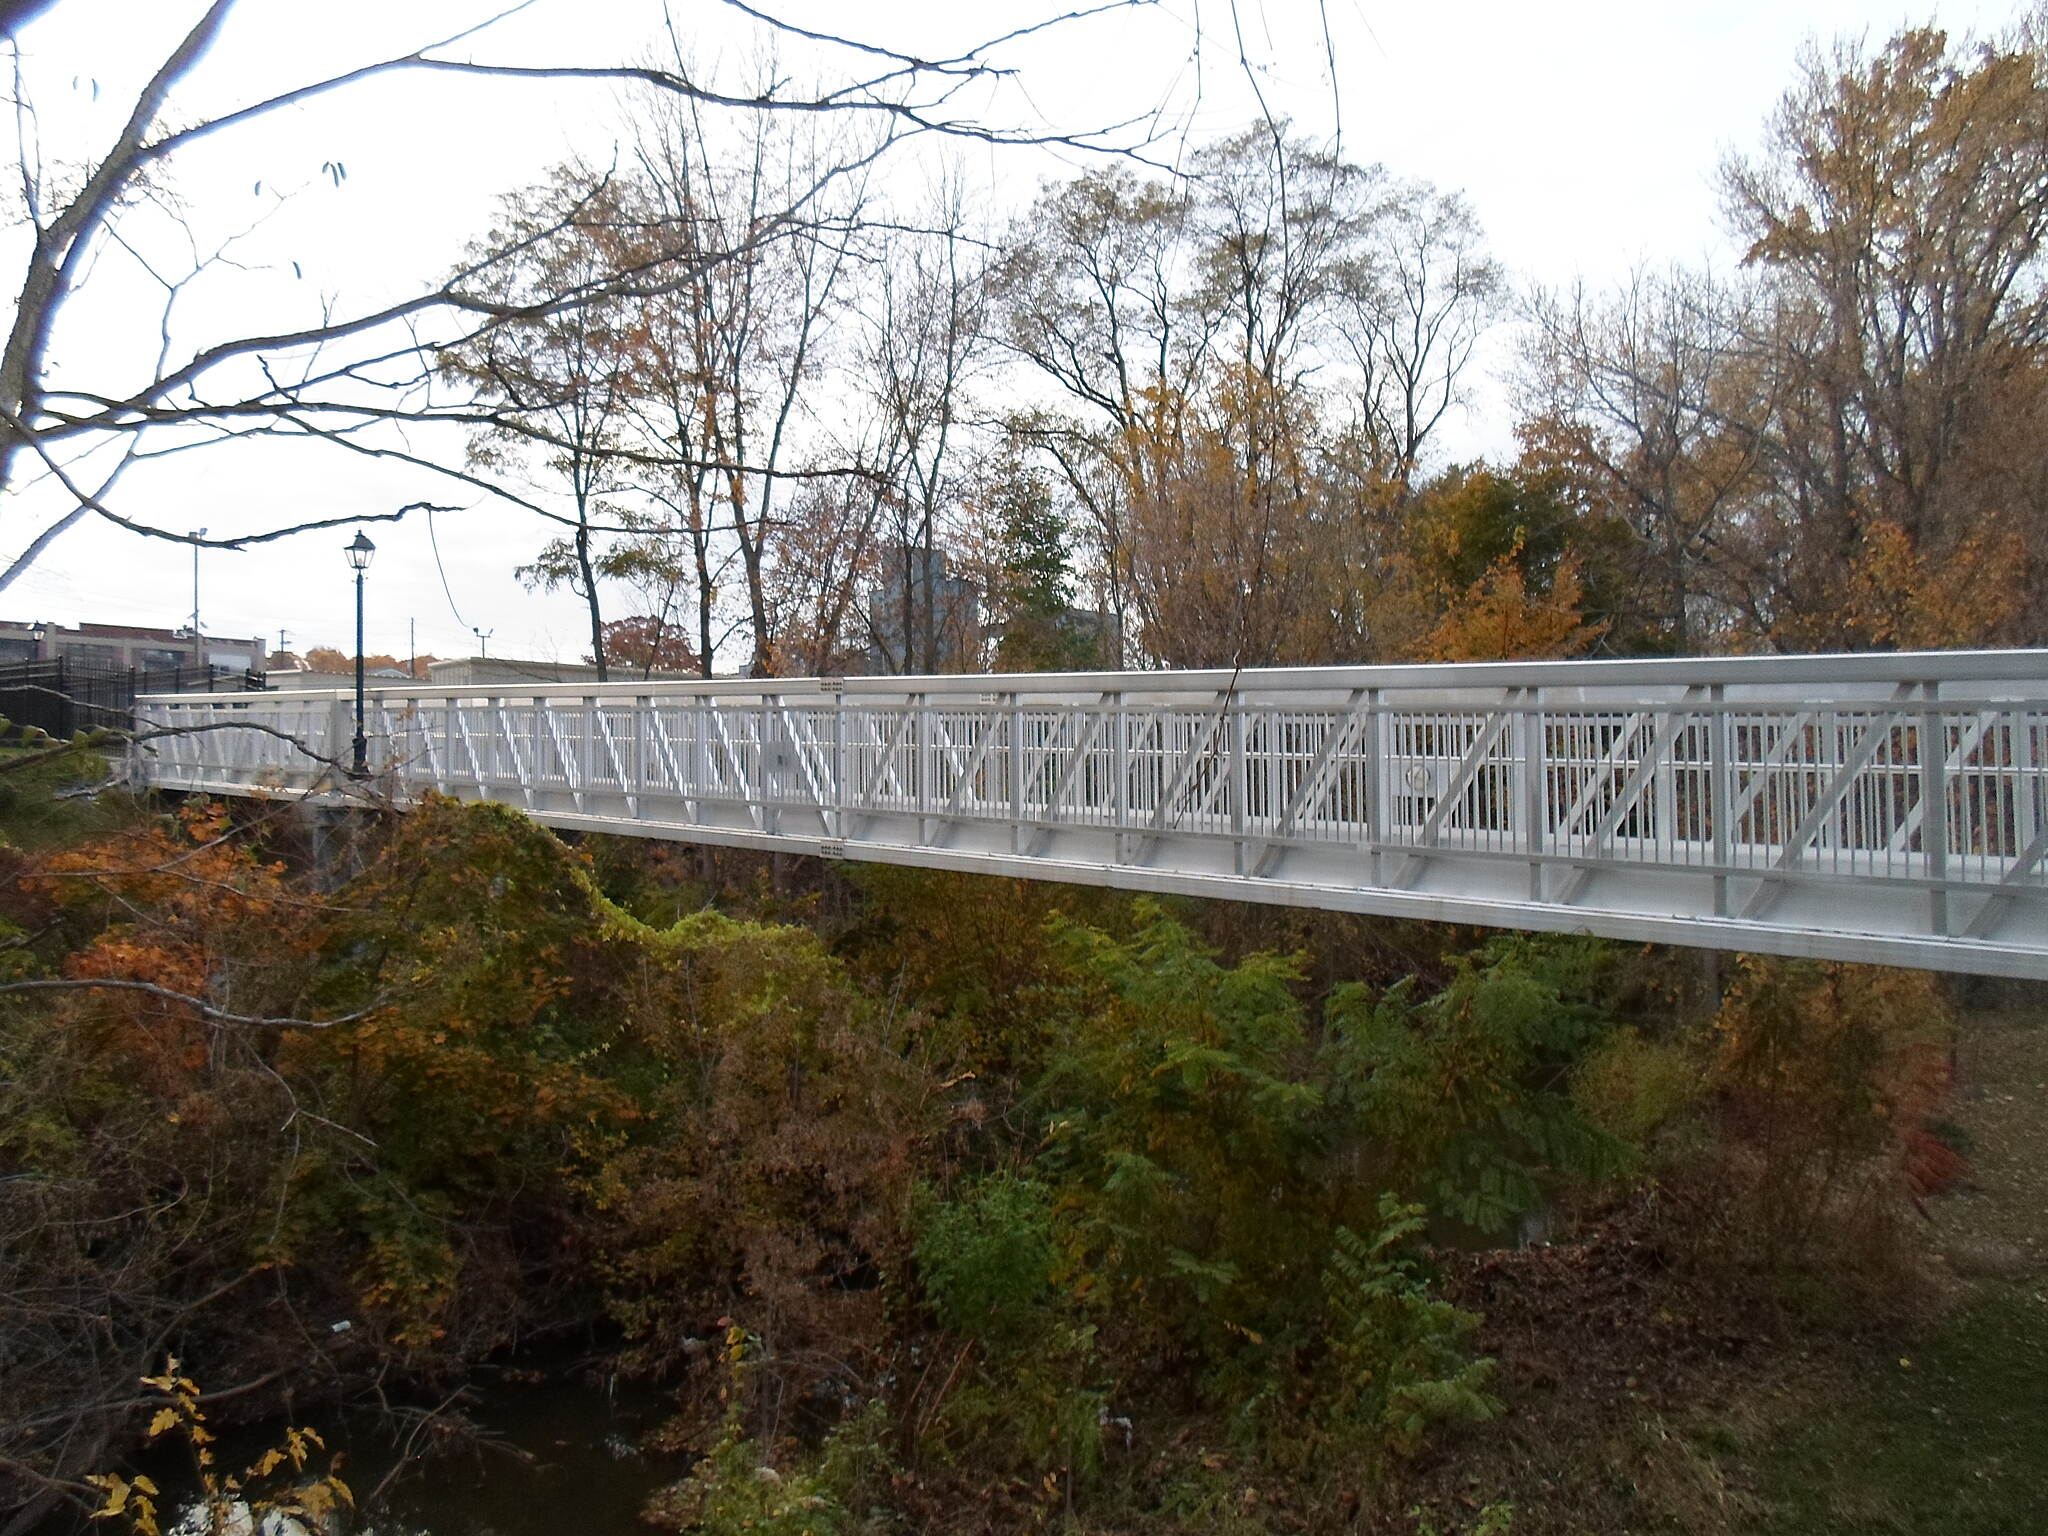 Elizabethtown Connector Trail Elizabethtown Connector Trail South side of the trail bridge over Conoy Creek, as seen from the descending ramp. Taken Oct. 2015.